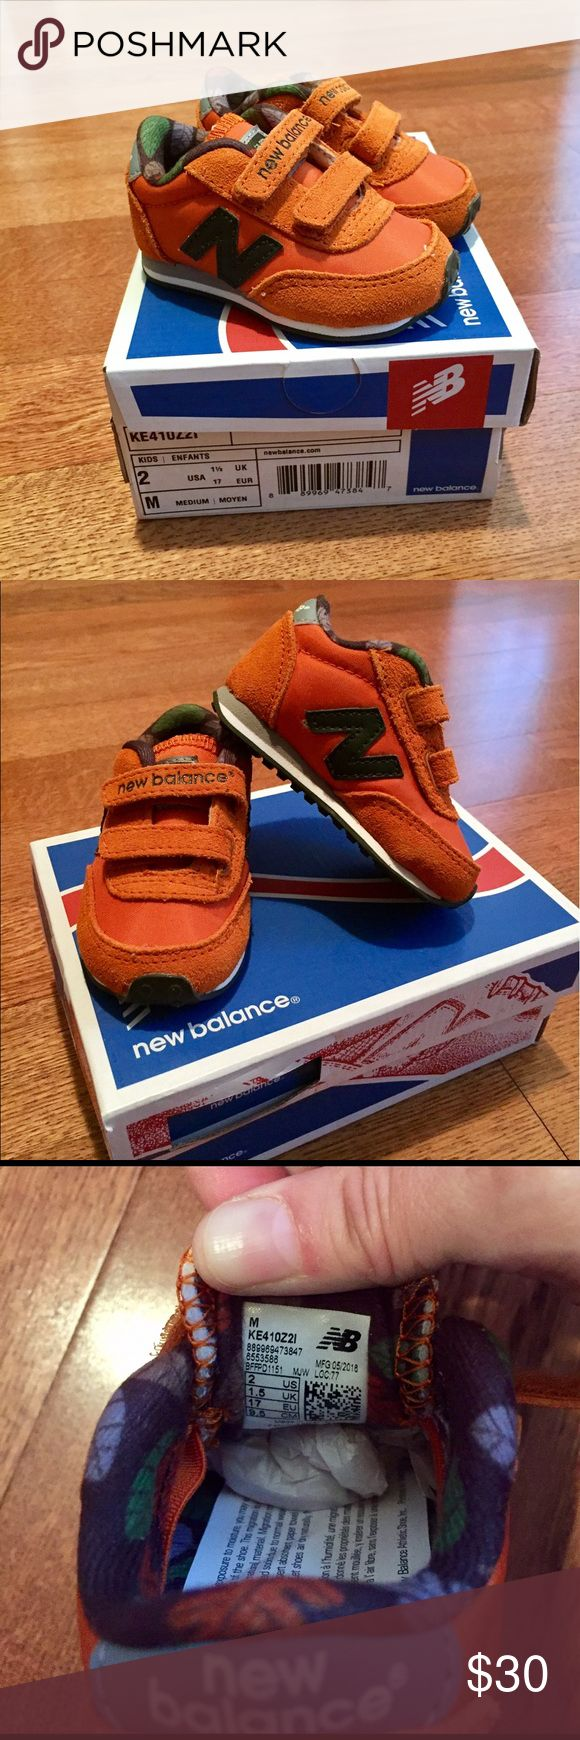 "Child New Balance shoes NWT!! Size 2 kids/infant New Balance tennis shoes with velcro straps. Burnt orange color with gray accent and Navy blue ""N"". Accidentally ordered wrong size and waited too long to return 😝 smoke free, pet free home. New Balance Shoes"